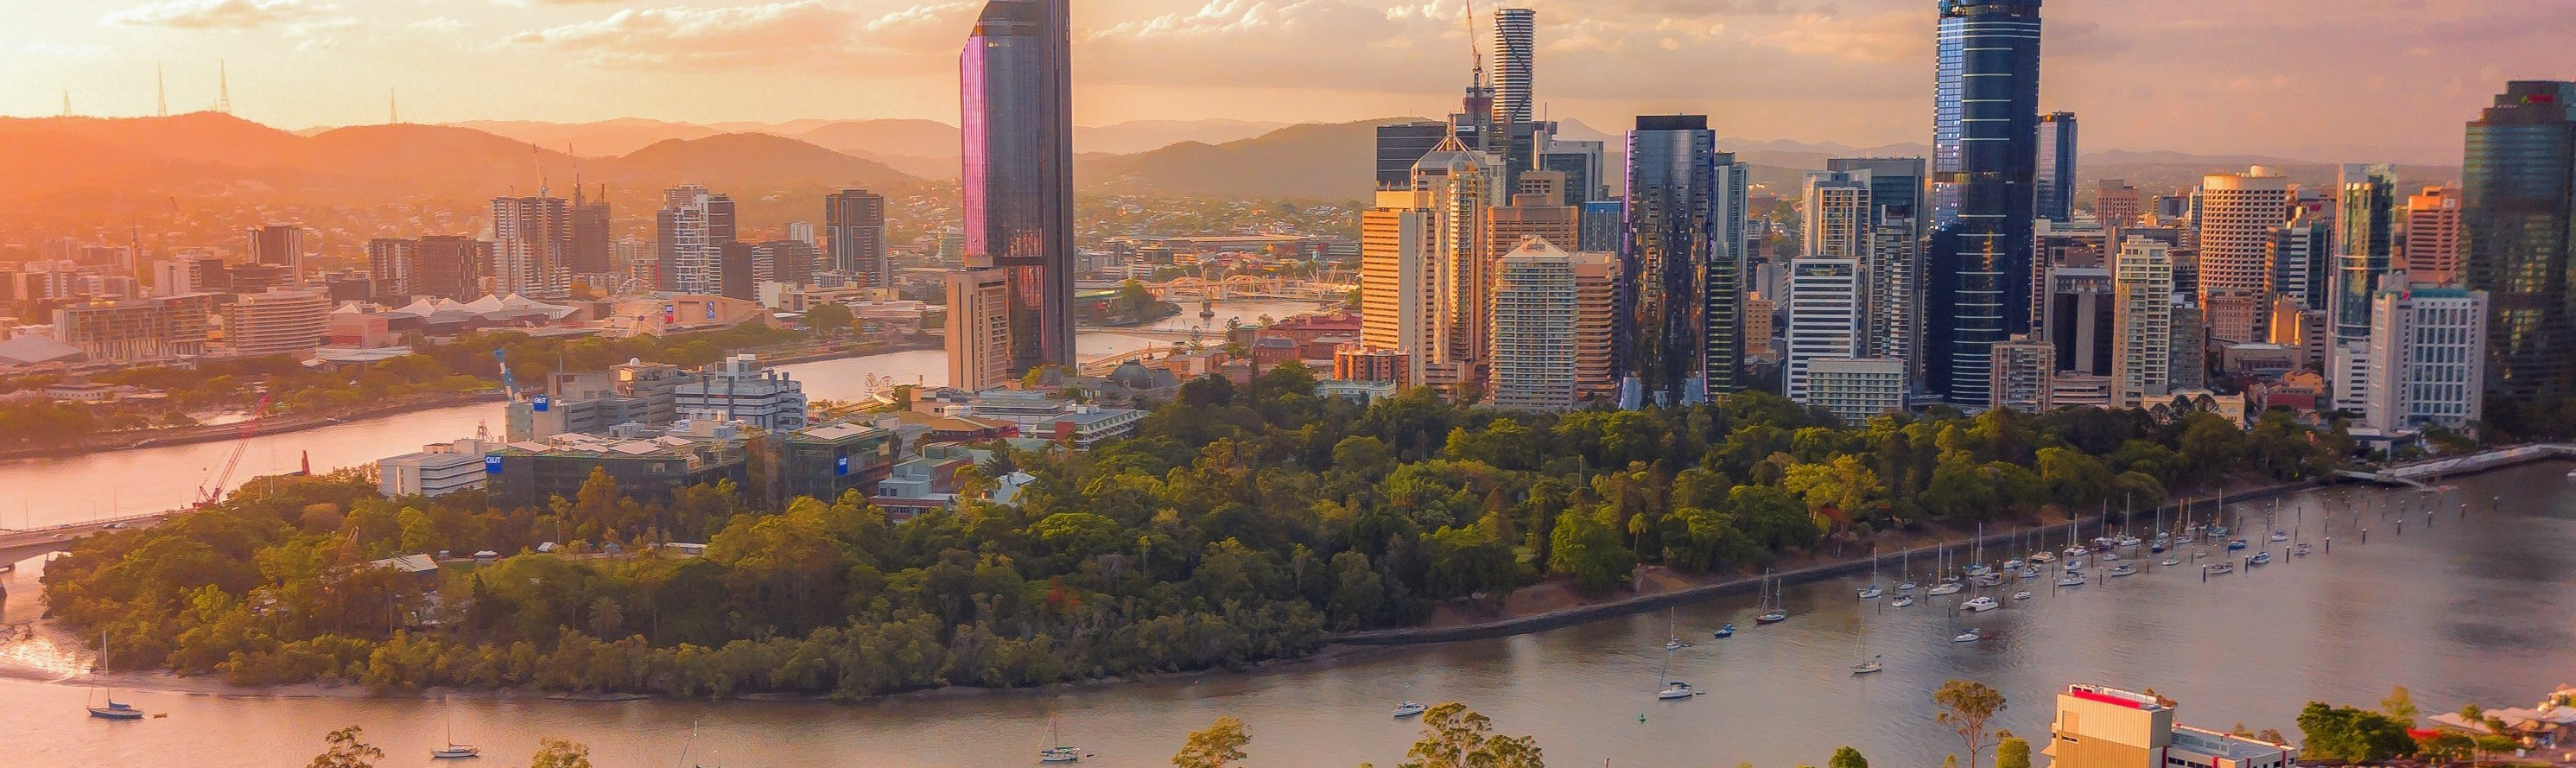 Brisbane City Skyline